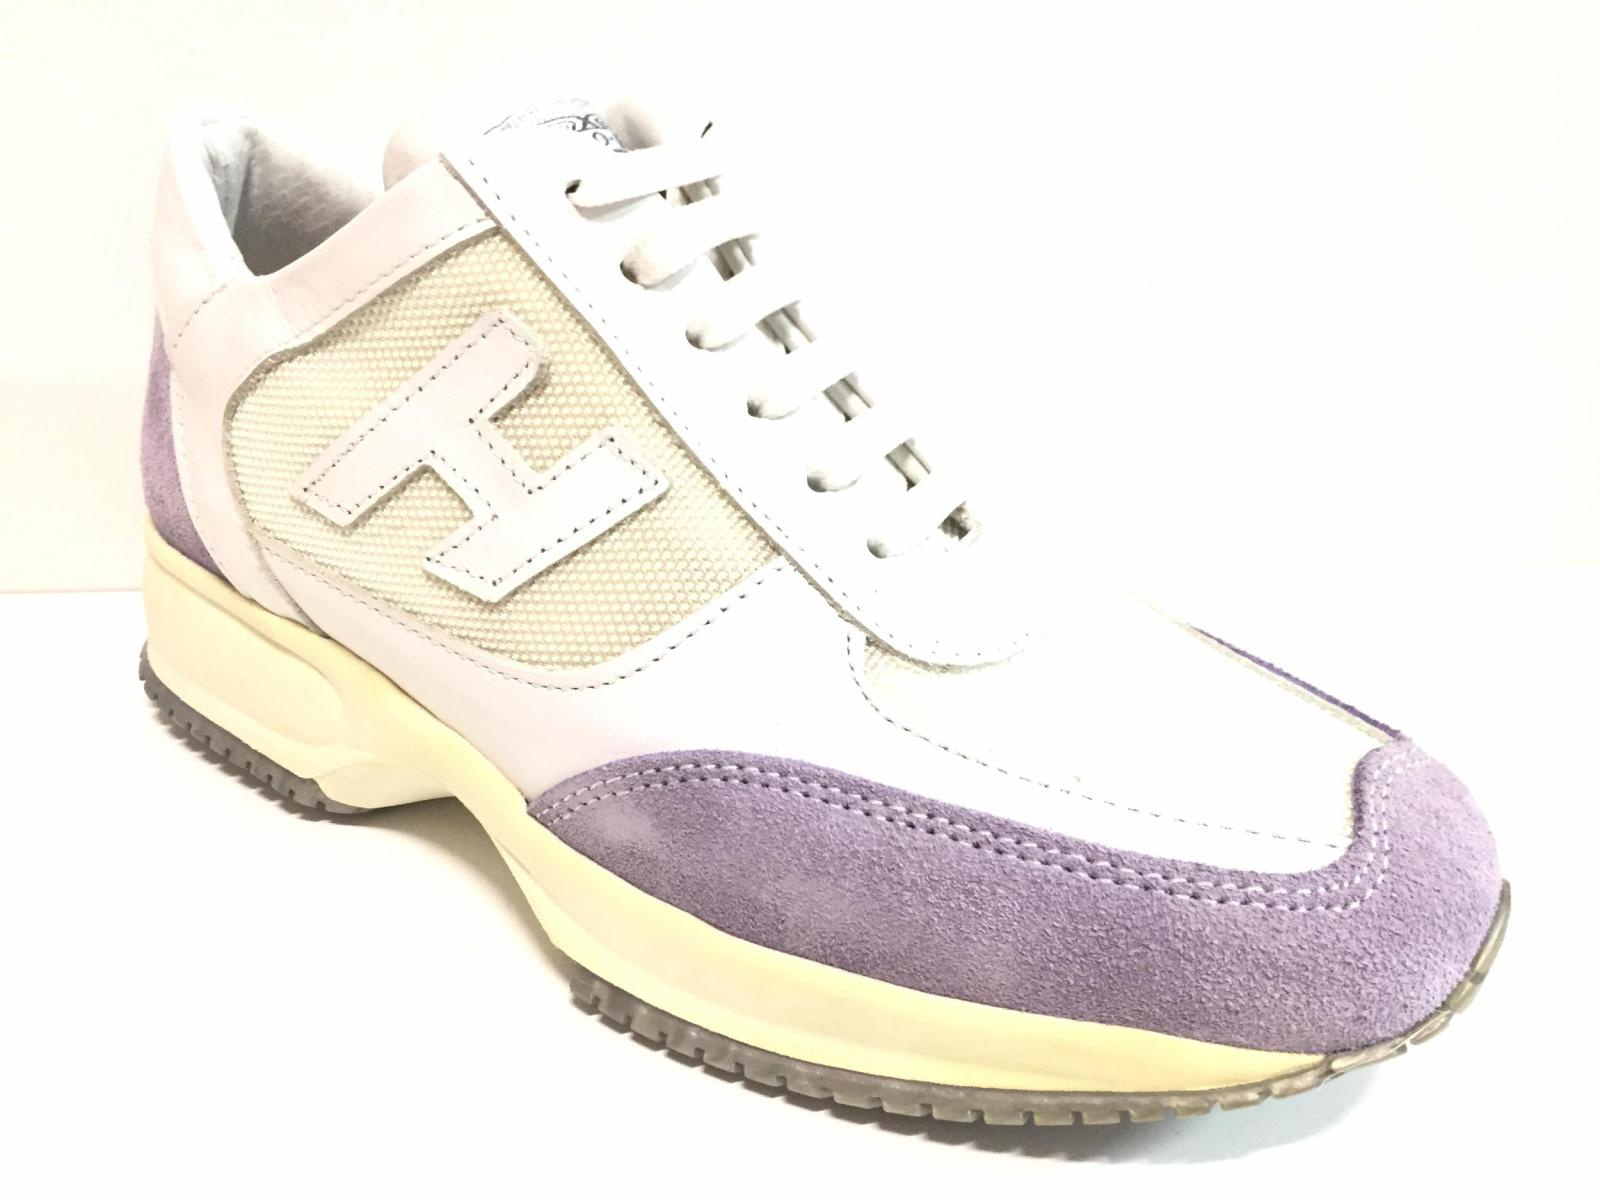 SCARPE SNEAKERS CASUAL DONNA DWD 7001D PELLE BIANCO ORIGINALE PE NEW